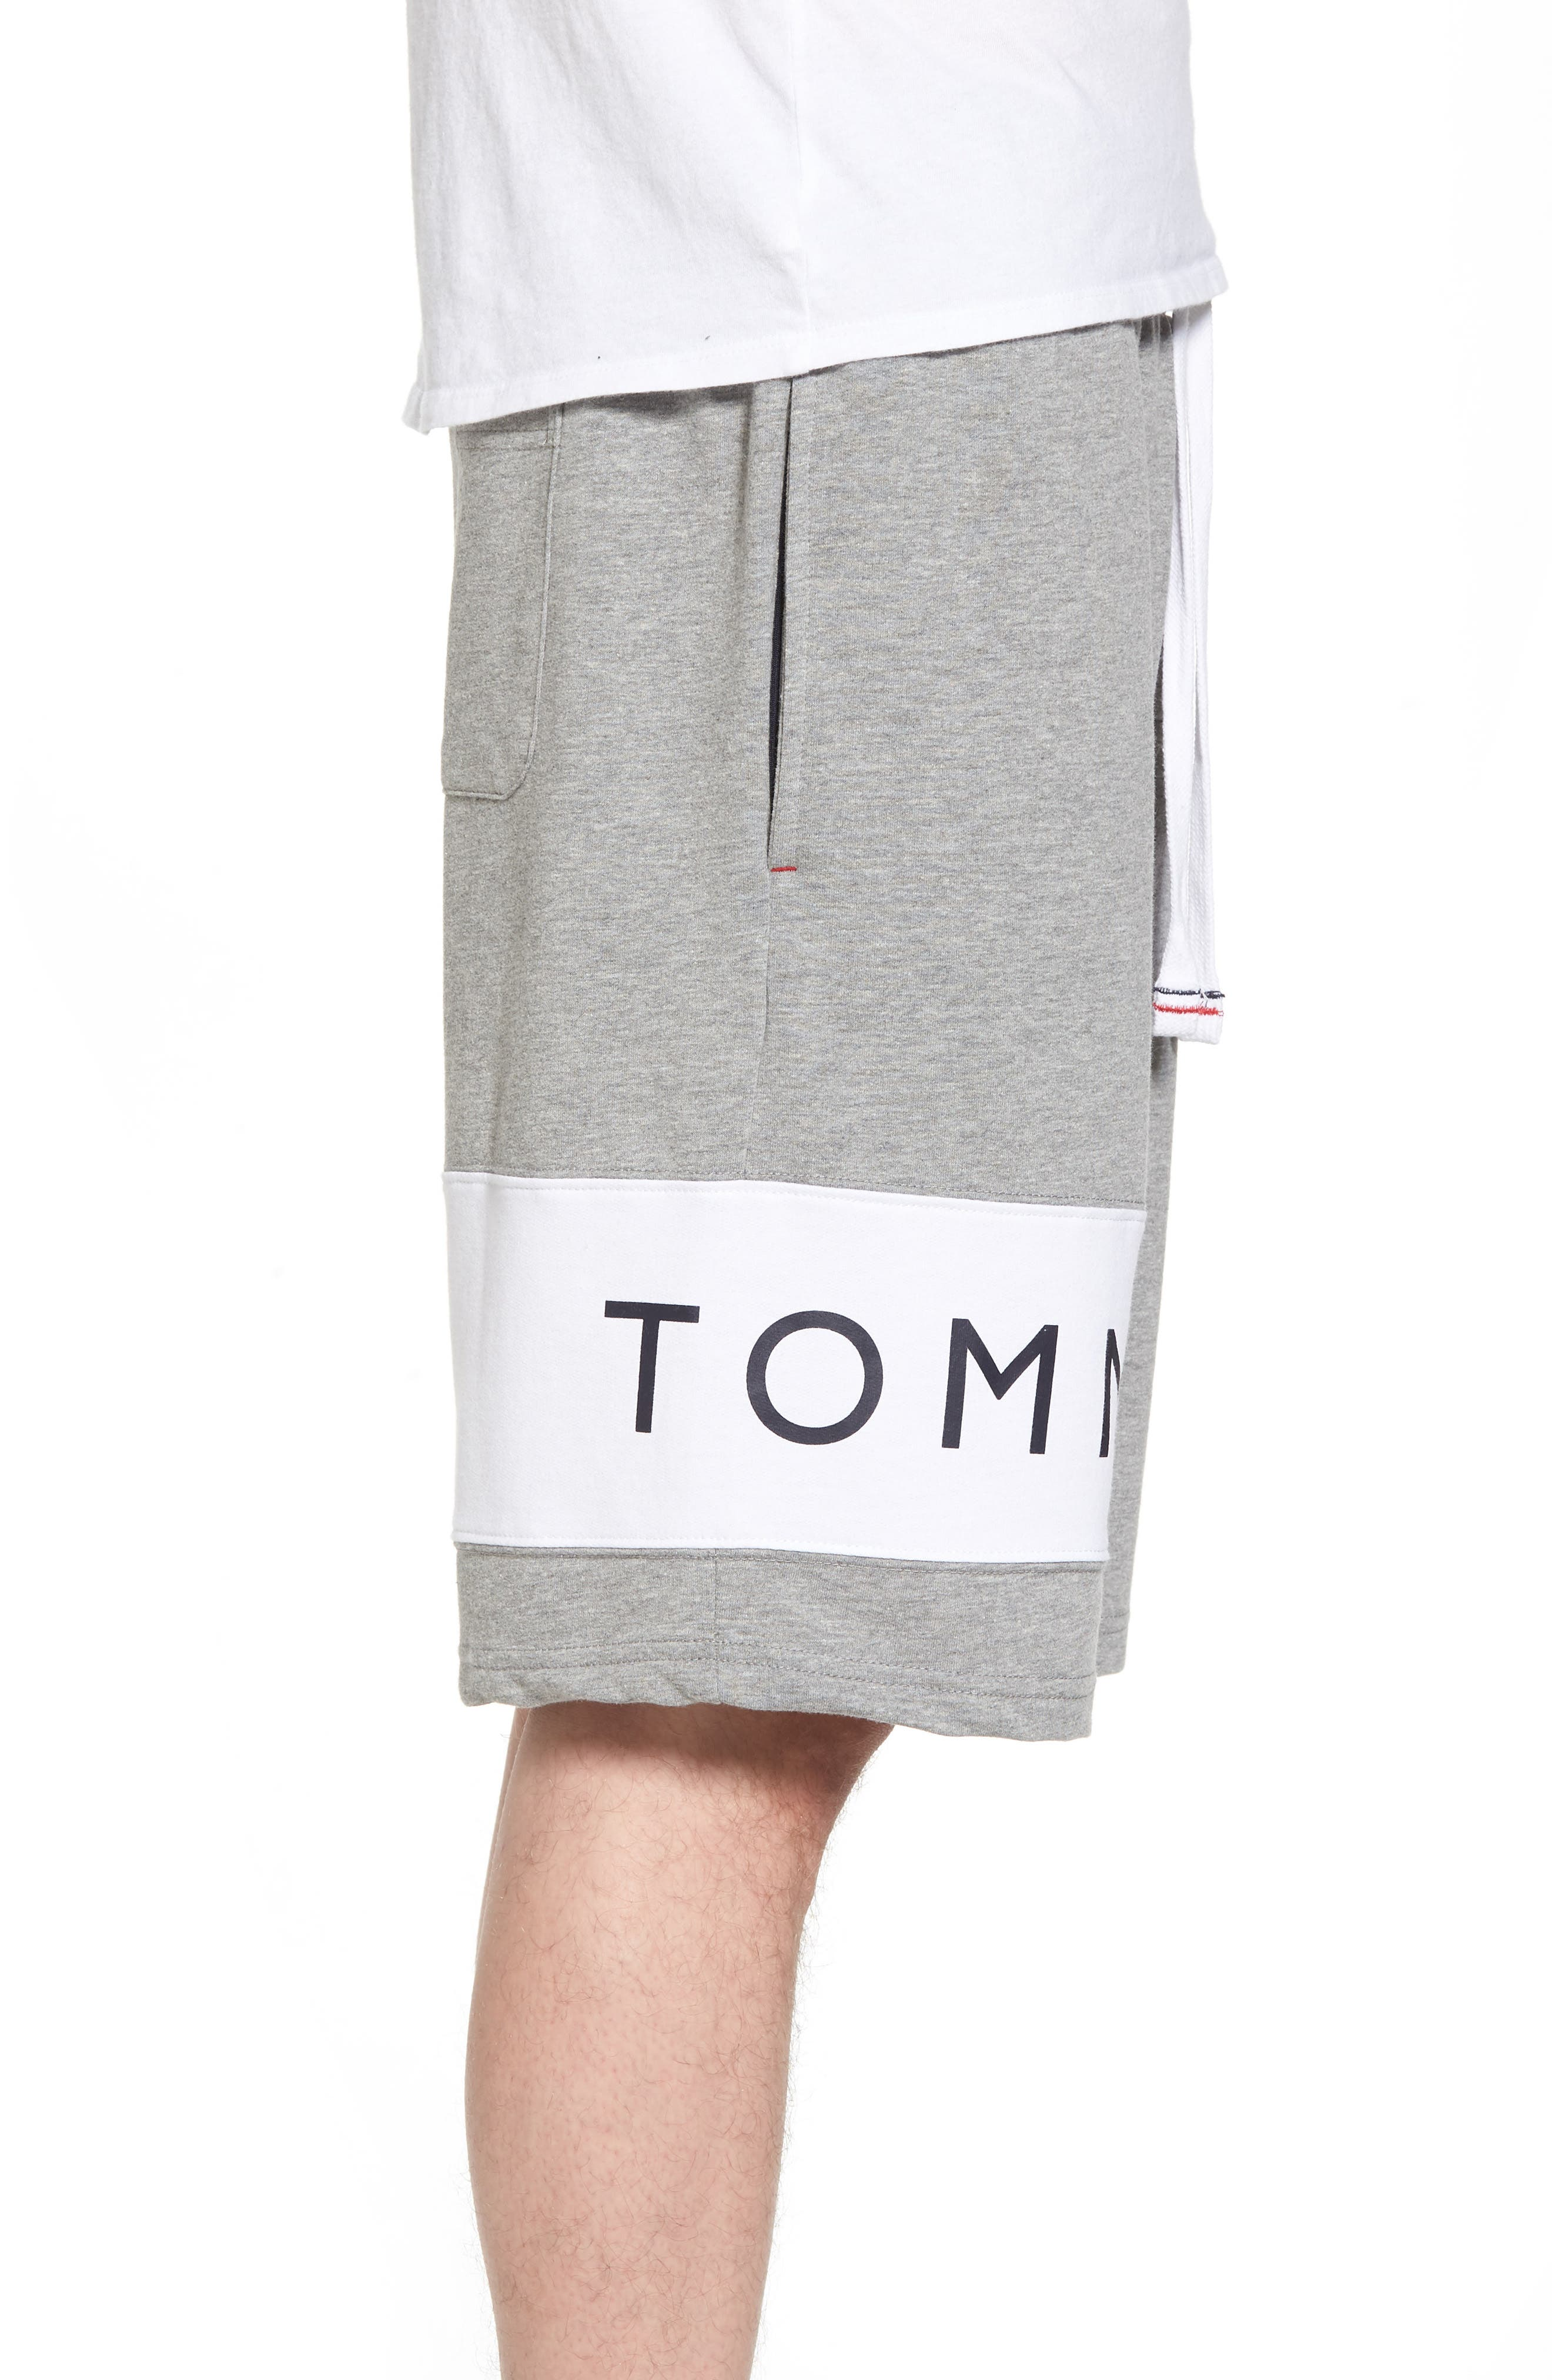 TOMMY HILFIGER,                             Lounge Shorts,                             Alternate thumbnail 4, color,                             GREY HEATHER